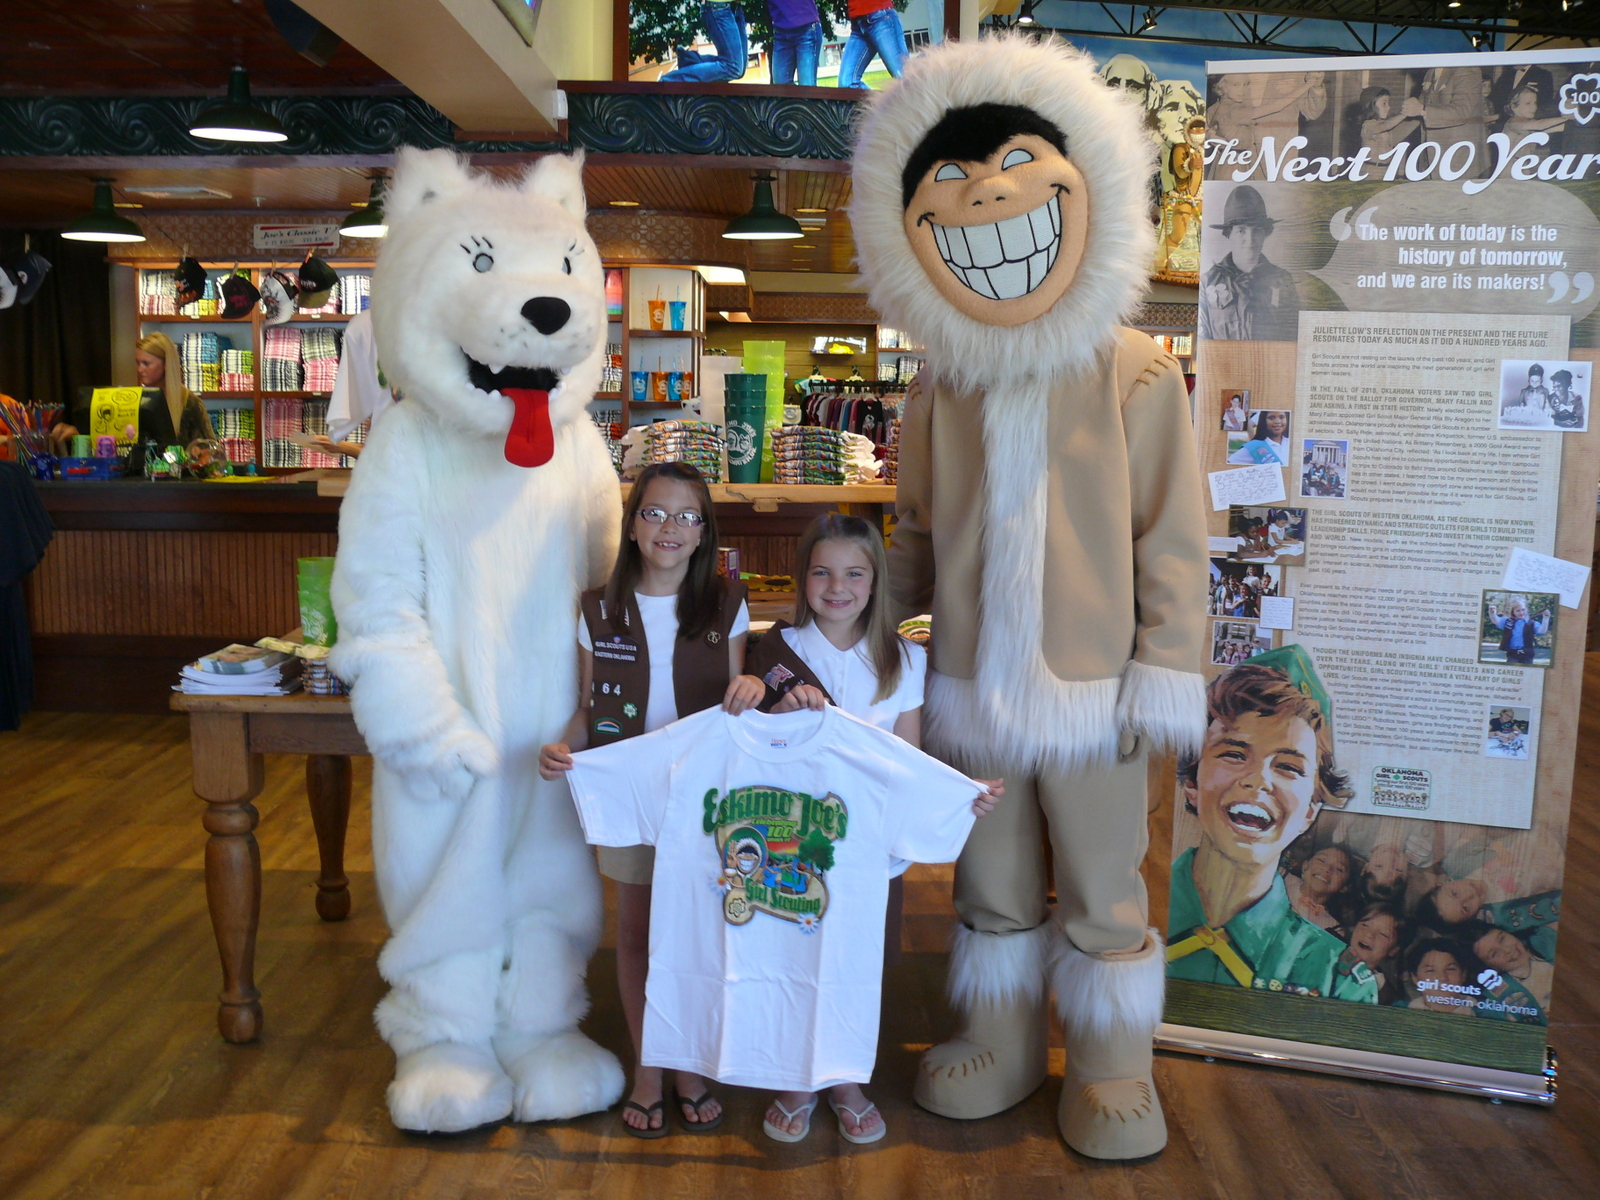 Eskimo Joe's unveils Girl Scouts' 100th anniversary t-shirt with Stillwater Girl Scouts Lydia and Kirstyn and friends Buffy and Eskimo Joe.